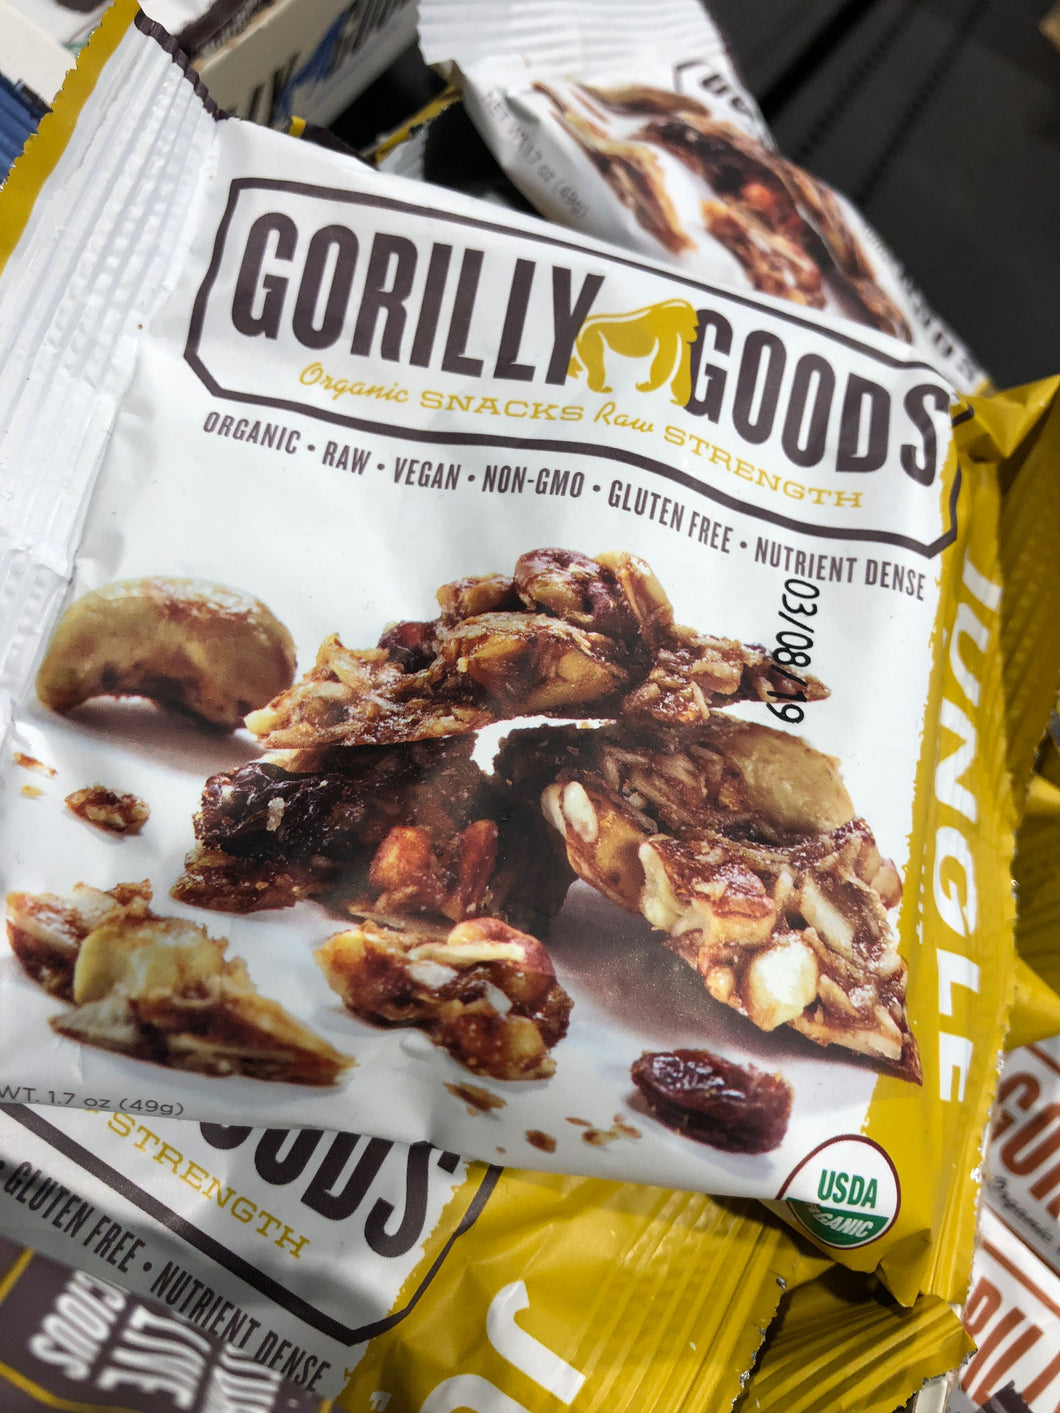 Gorilly Goods Jungle Fruit & Nuts